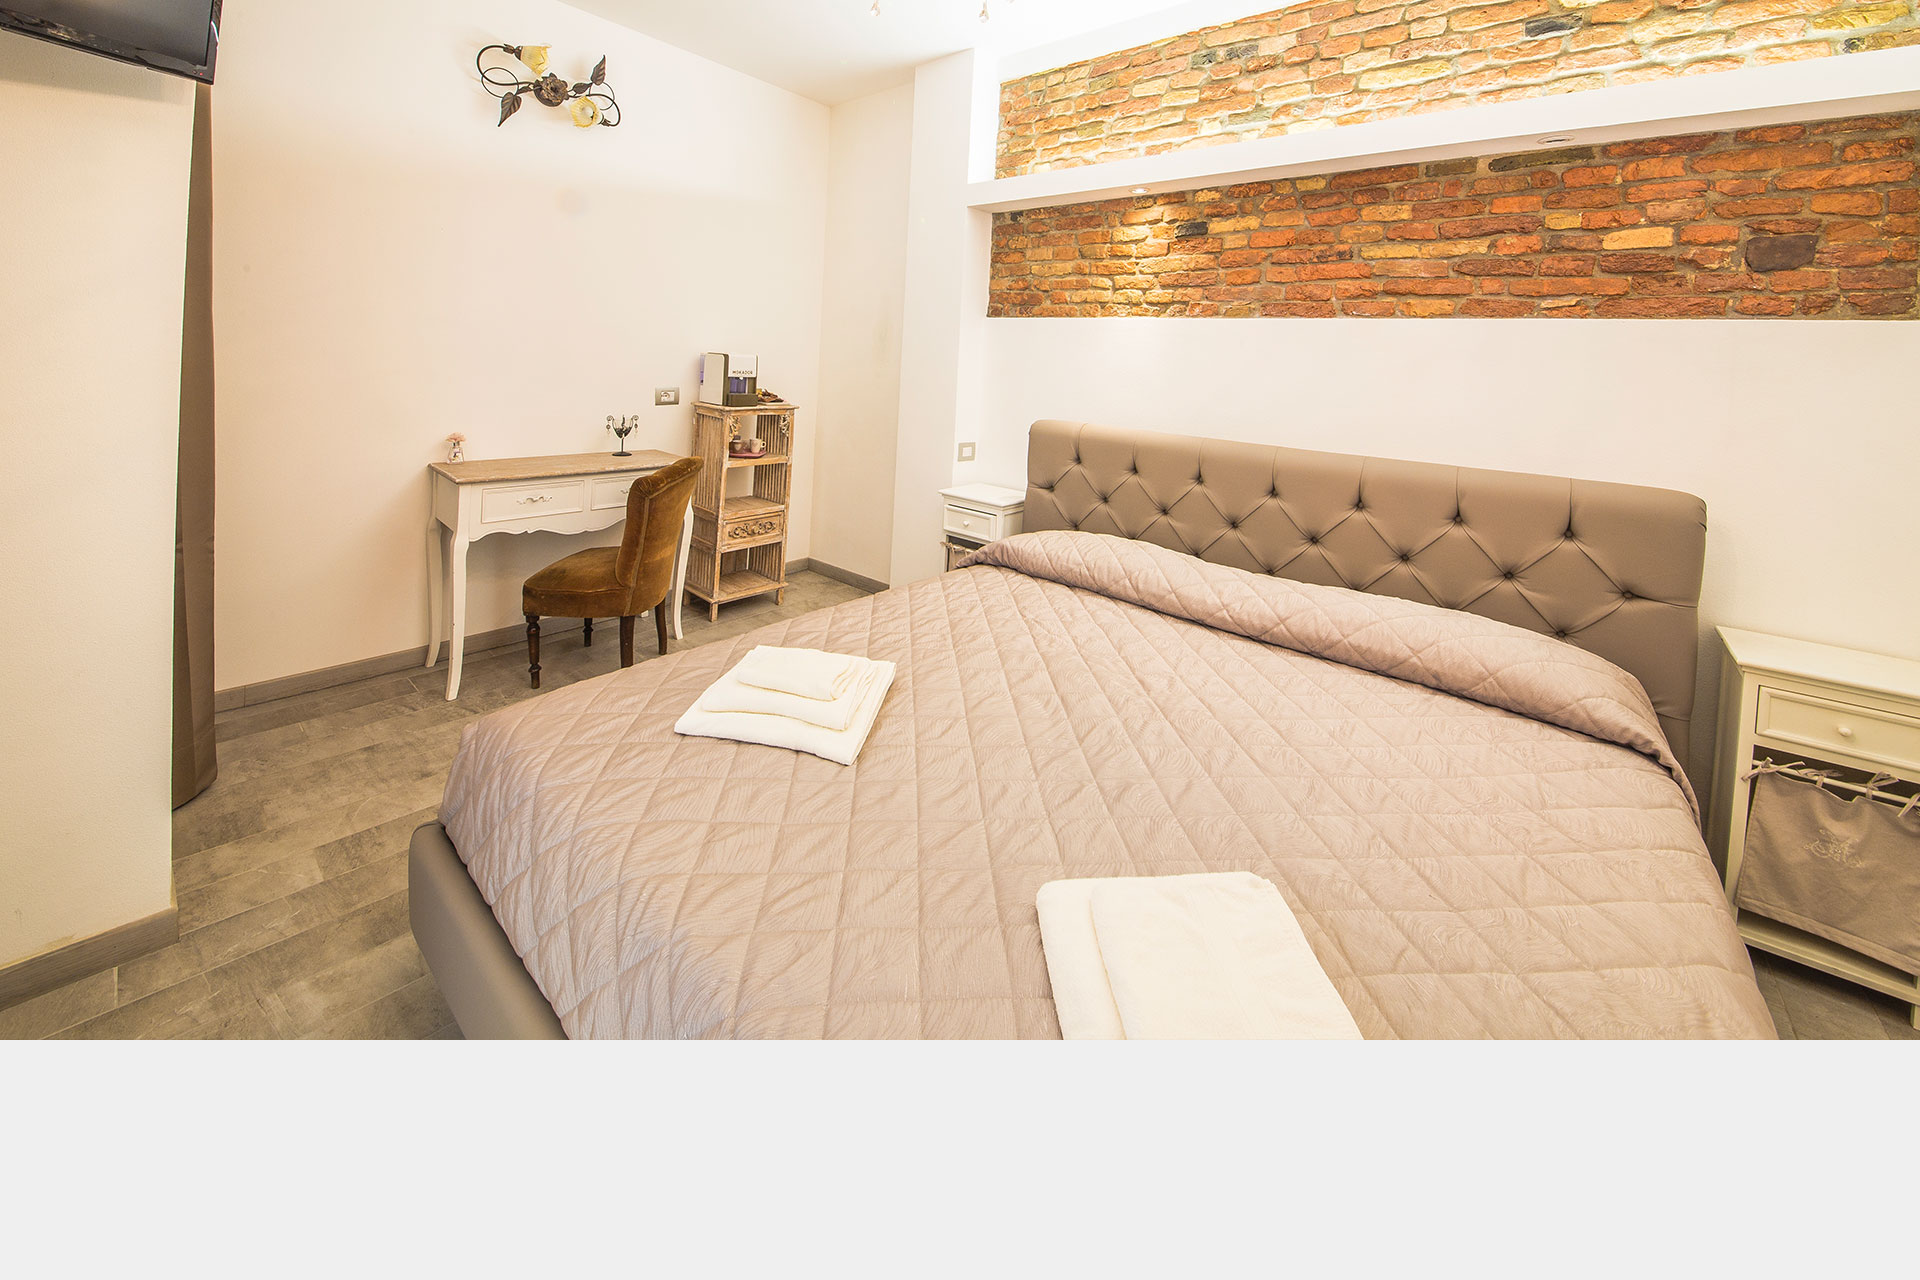 Le Stanze di Leonardo Bed and Breakfast Porto Canale di Cesenatico